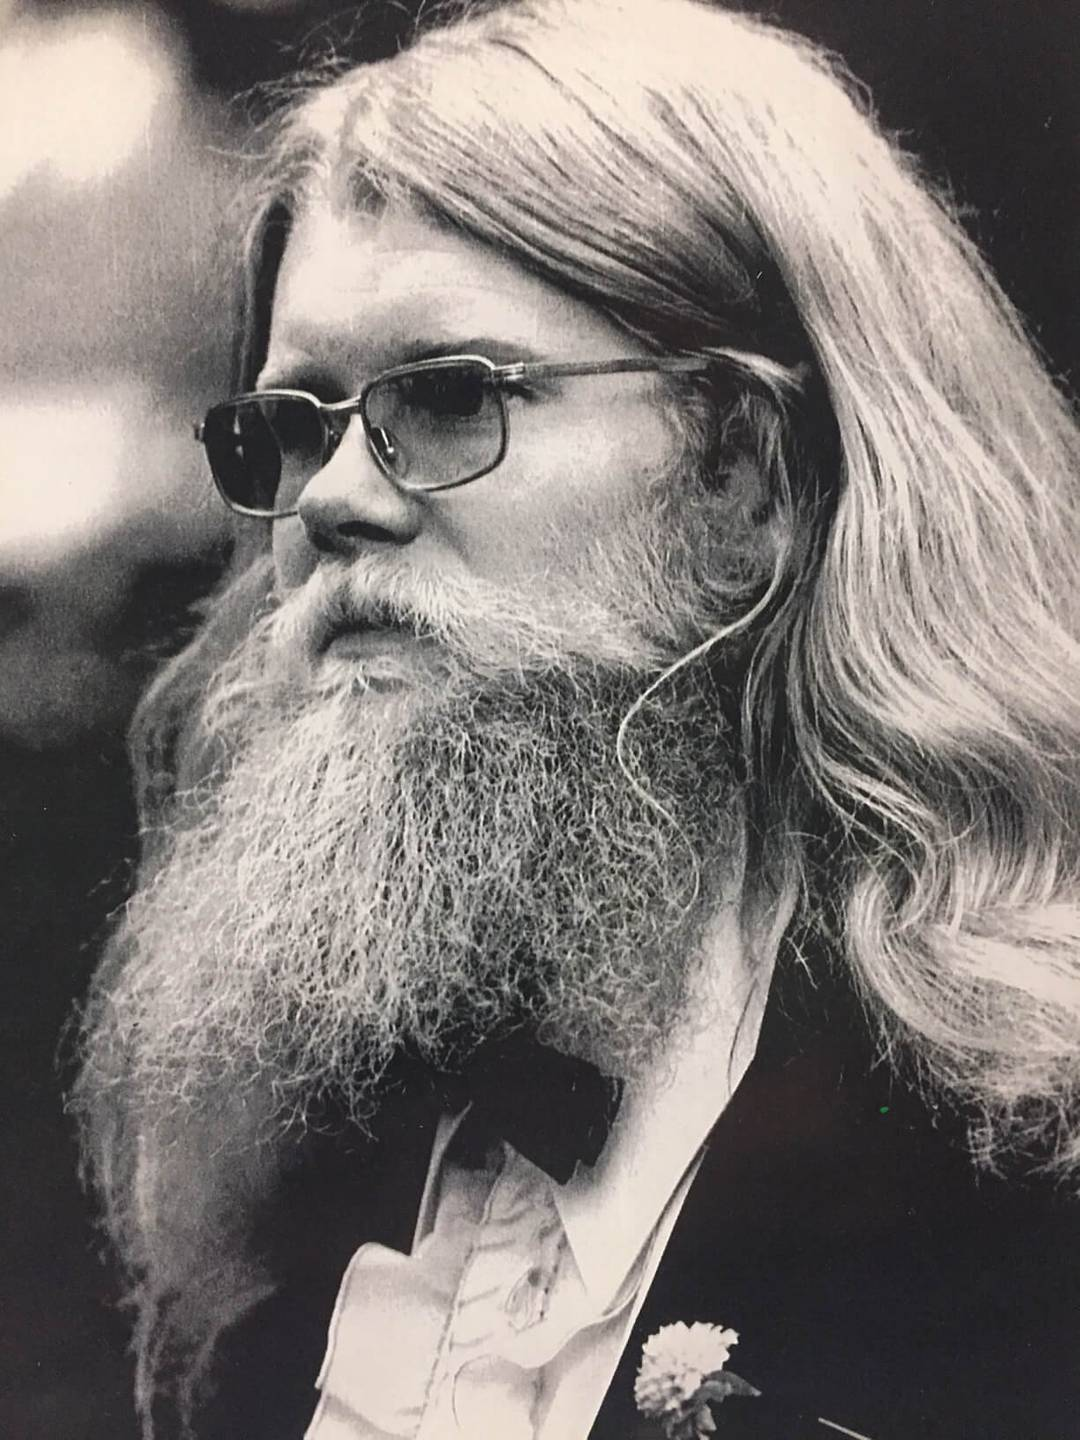 A man with long hair, a beard, and tinted glasses in a suit and bow tie with a carnation boutonniere.